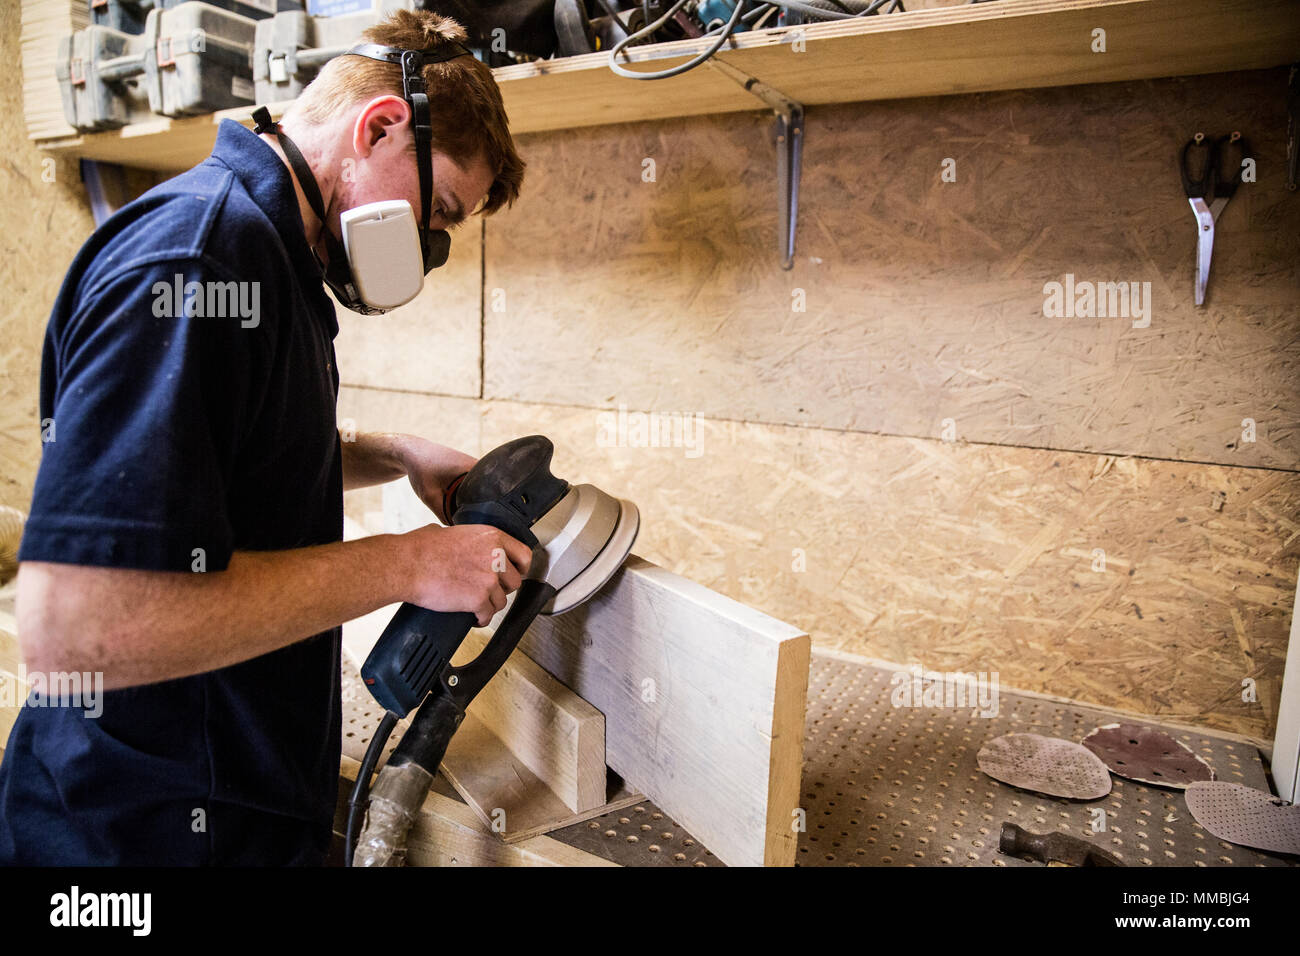 Young man wearing dust mask and protective goggles standing in a workshop, using sander to smoothen edge of piece of wood. - Stock Image